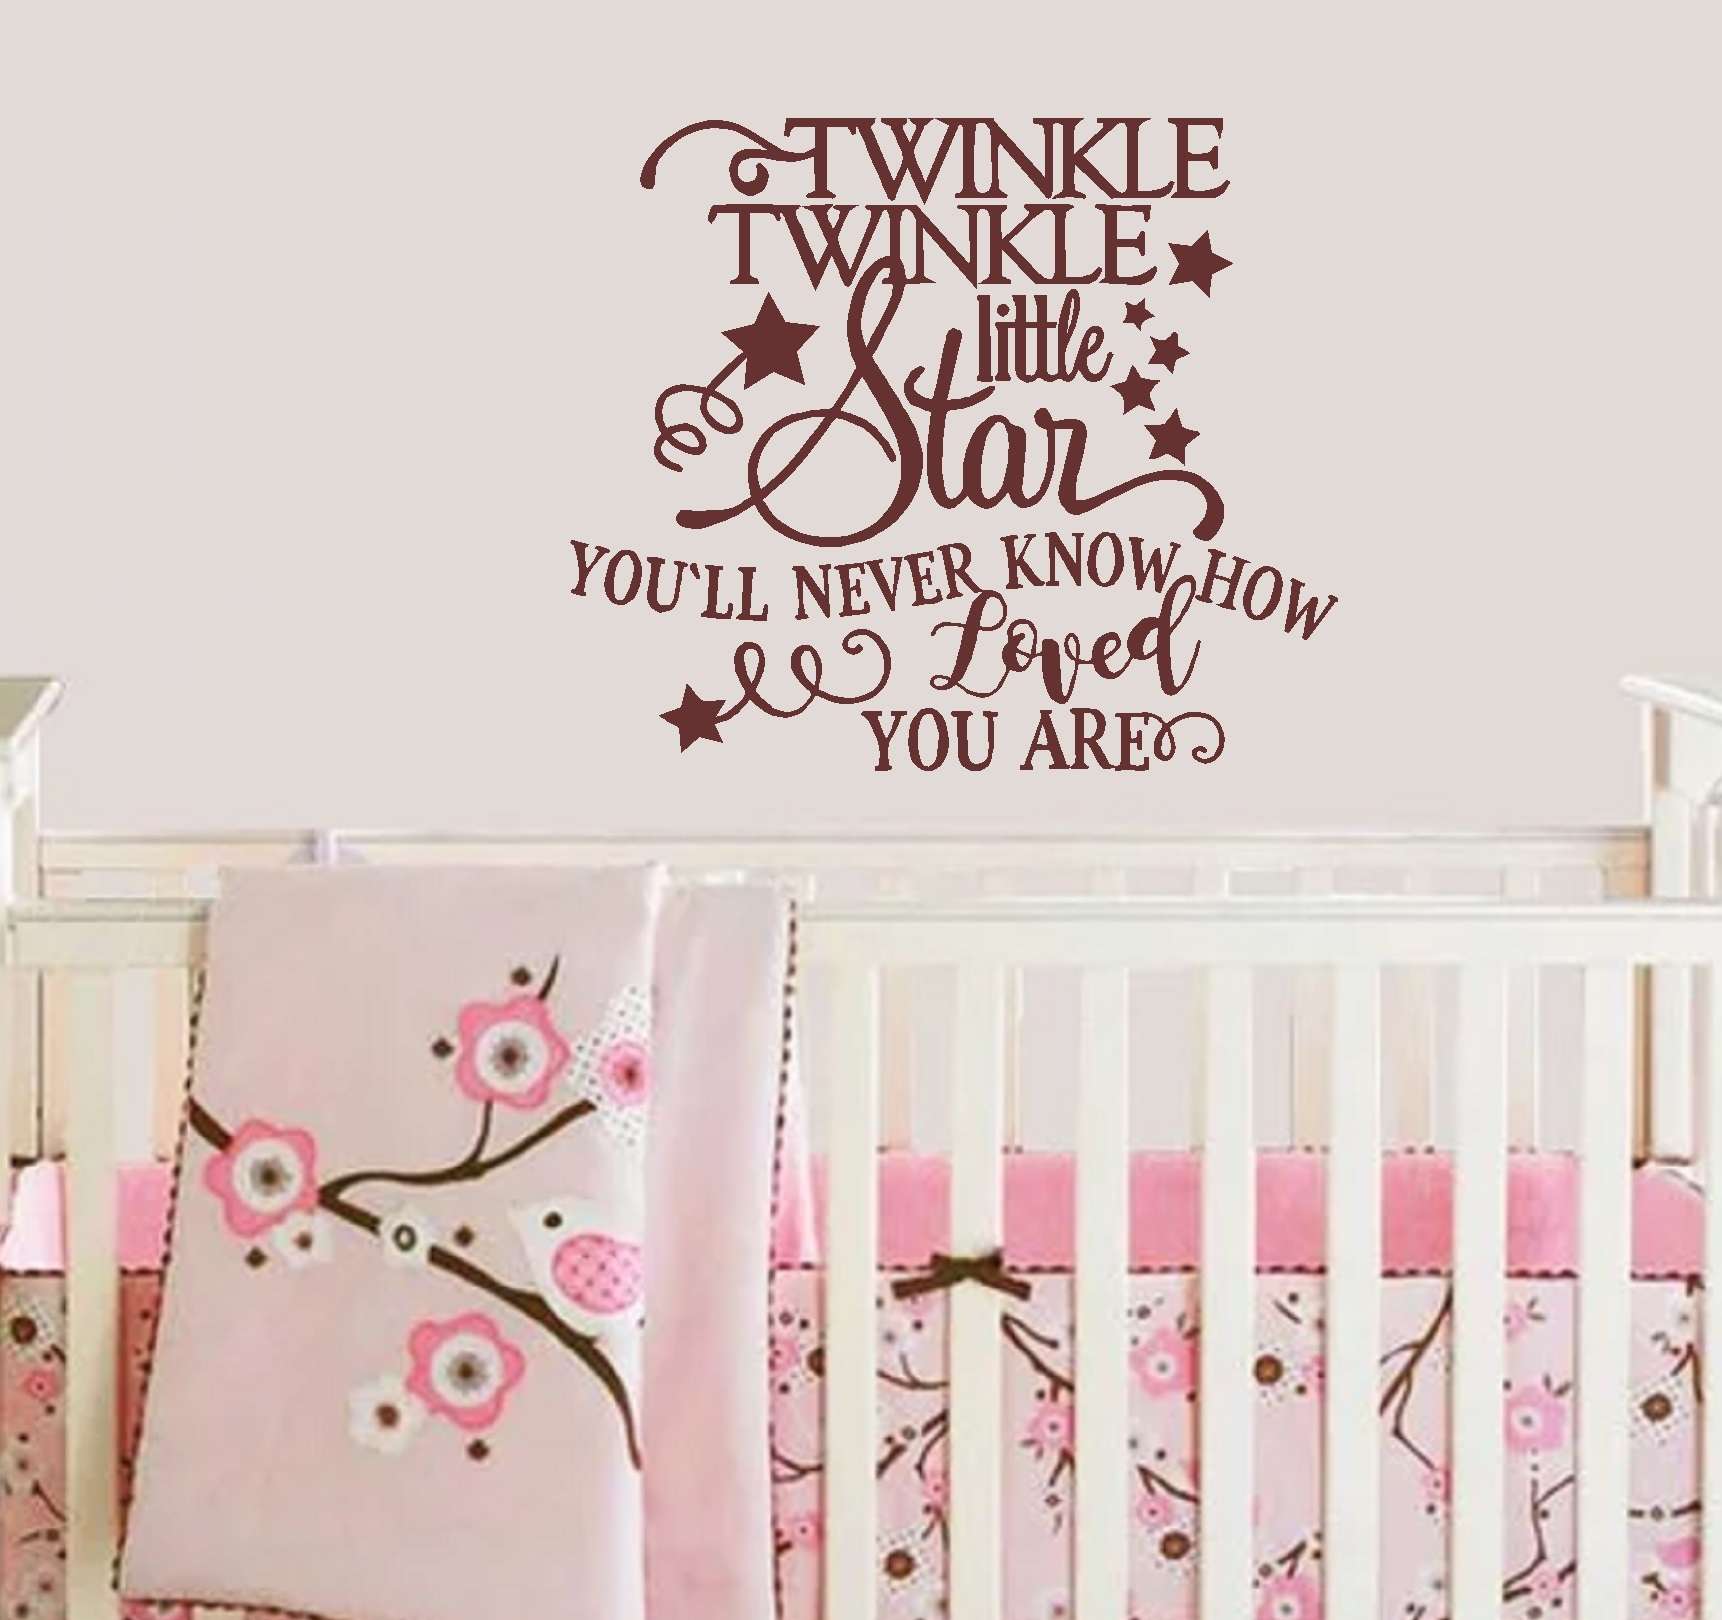 """Twinkle Twinkle Little Star You'll never know how loved you are ~ Nursery Wall Decal 17"""" x 20"""" (Black)"""